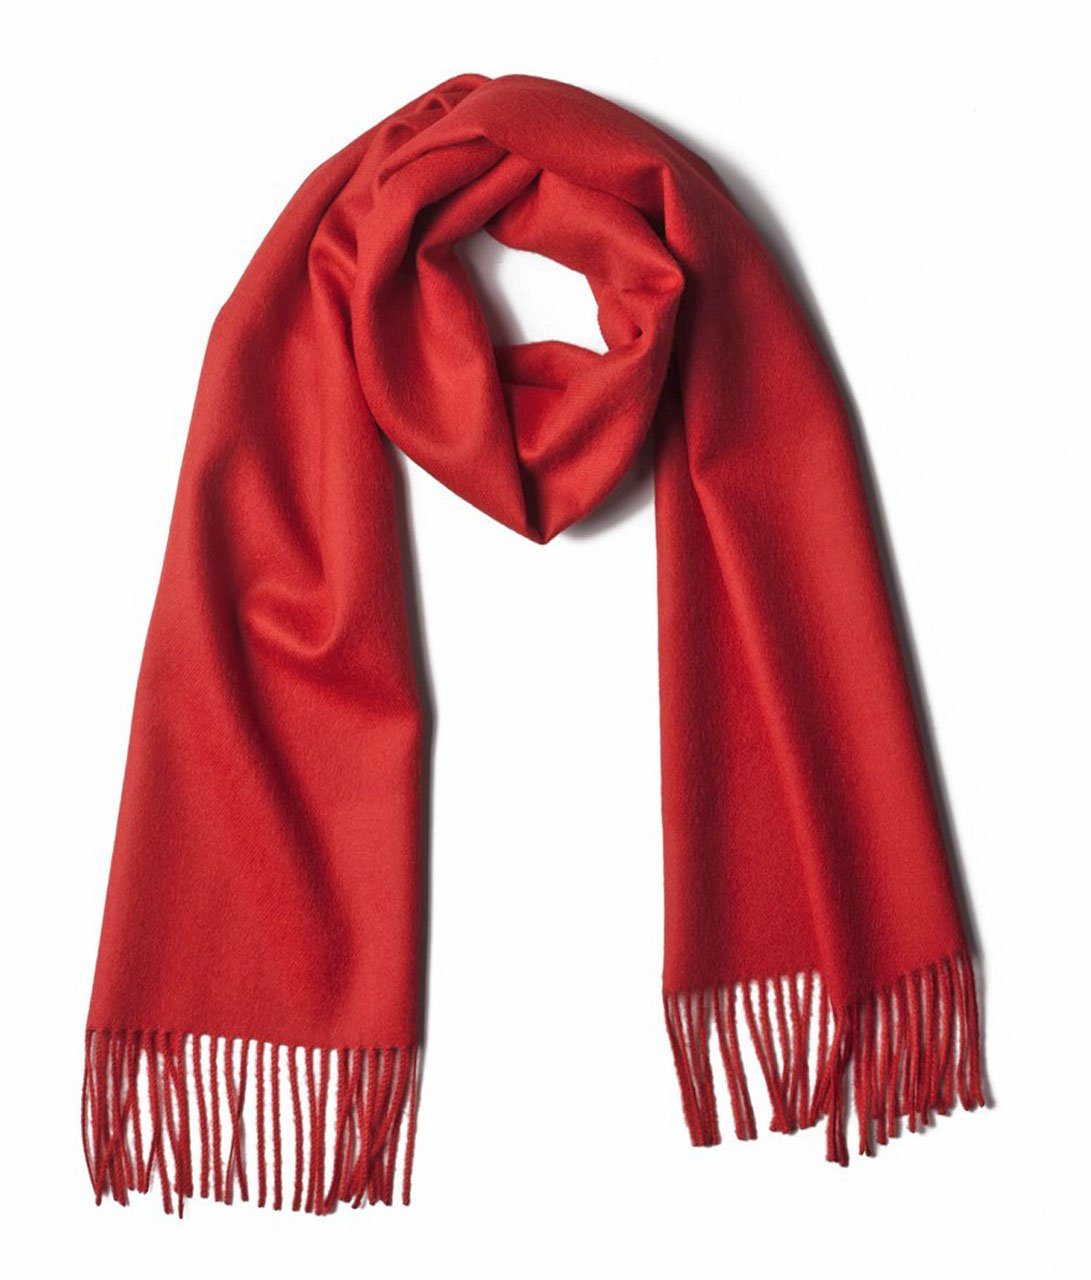 Luxury 100% Pure Baby Alpaca Scarf, for Men and Women - A Great Gift Idea in Many Colors (Red)